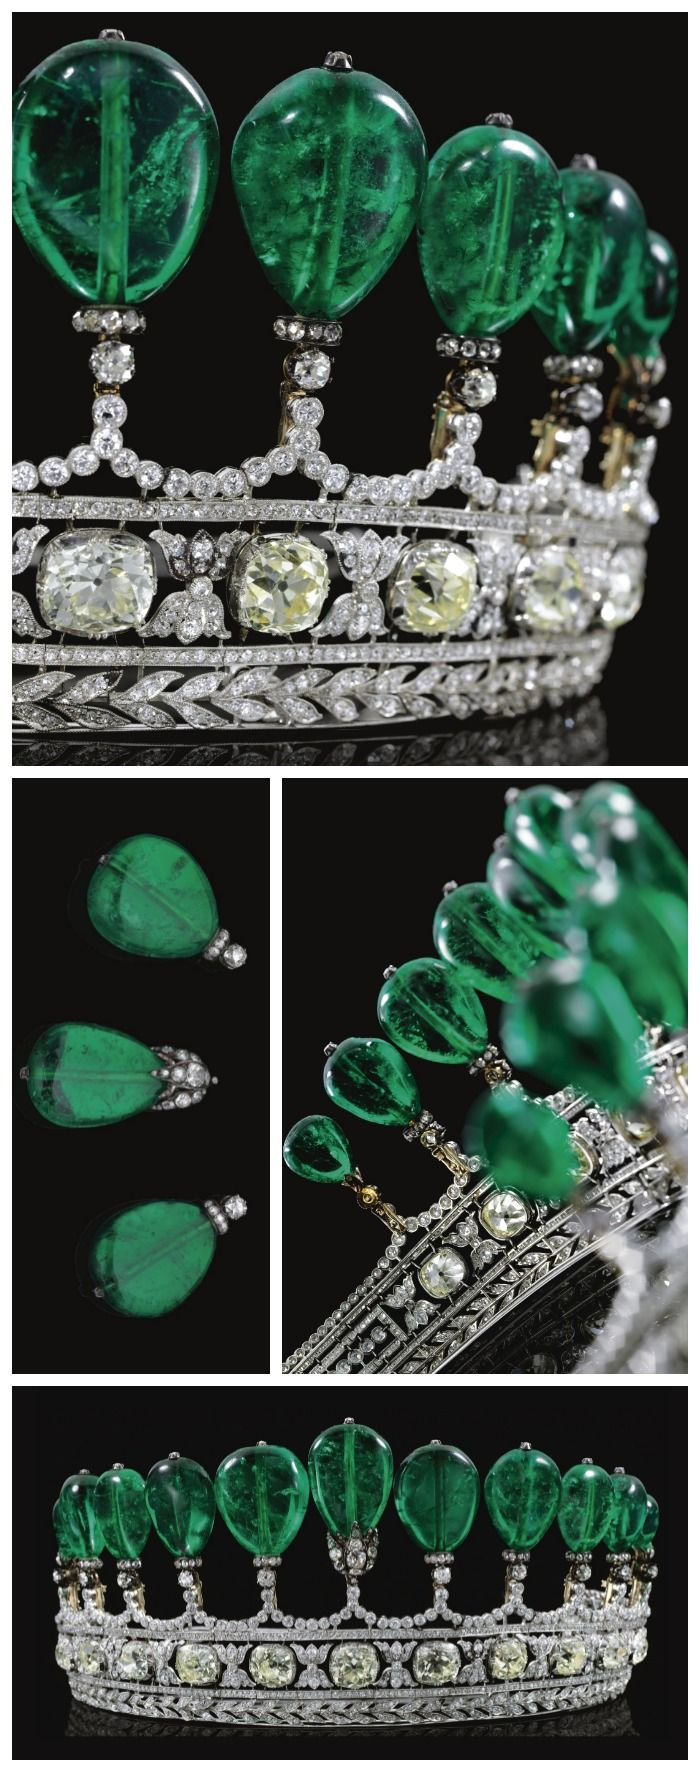 Multiple views: Magnificent and rare antique emerald and diamond tiara, circa 1900. Previously owned by Princess Katharina Henckel Von Donnersmarck. Via Diamonds in the Library.